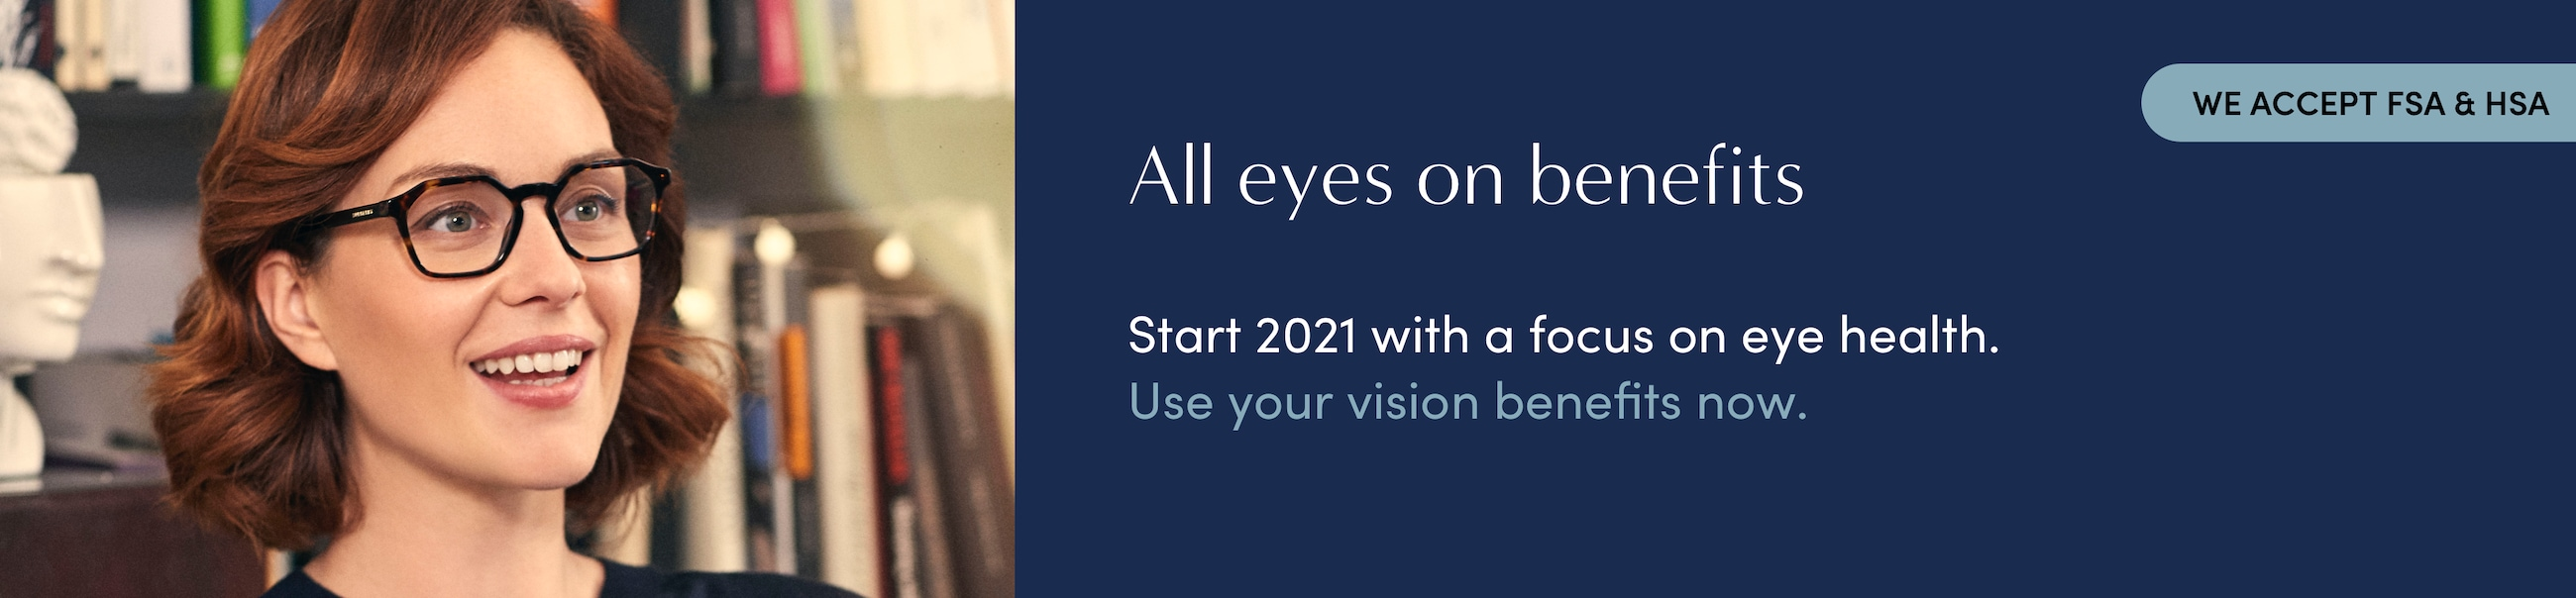 Use your vision benefits now